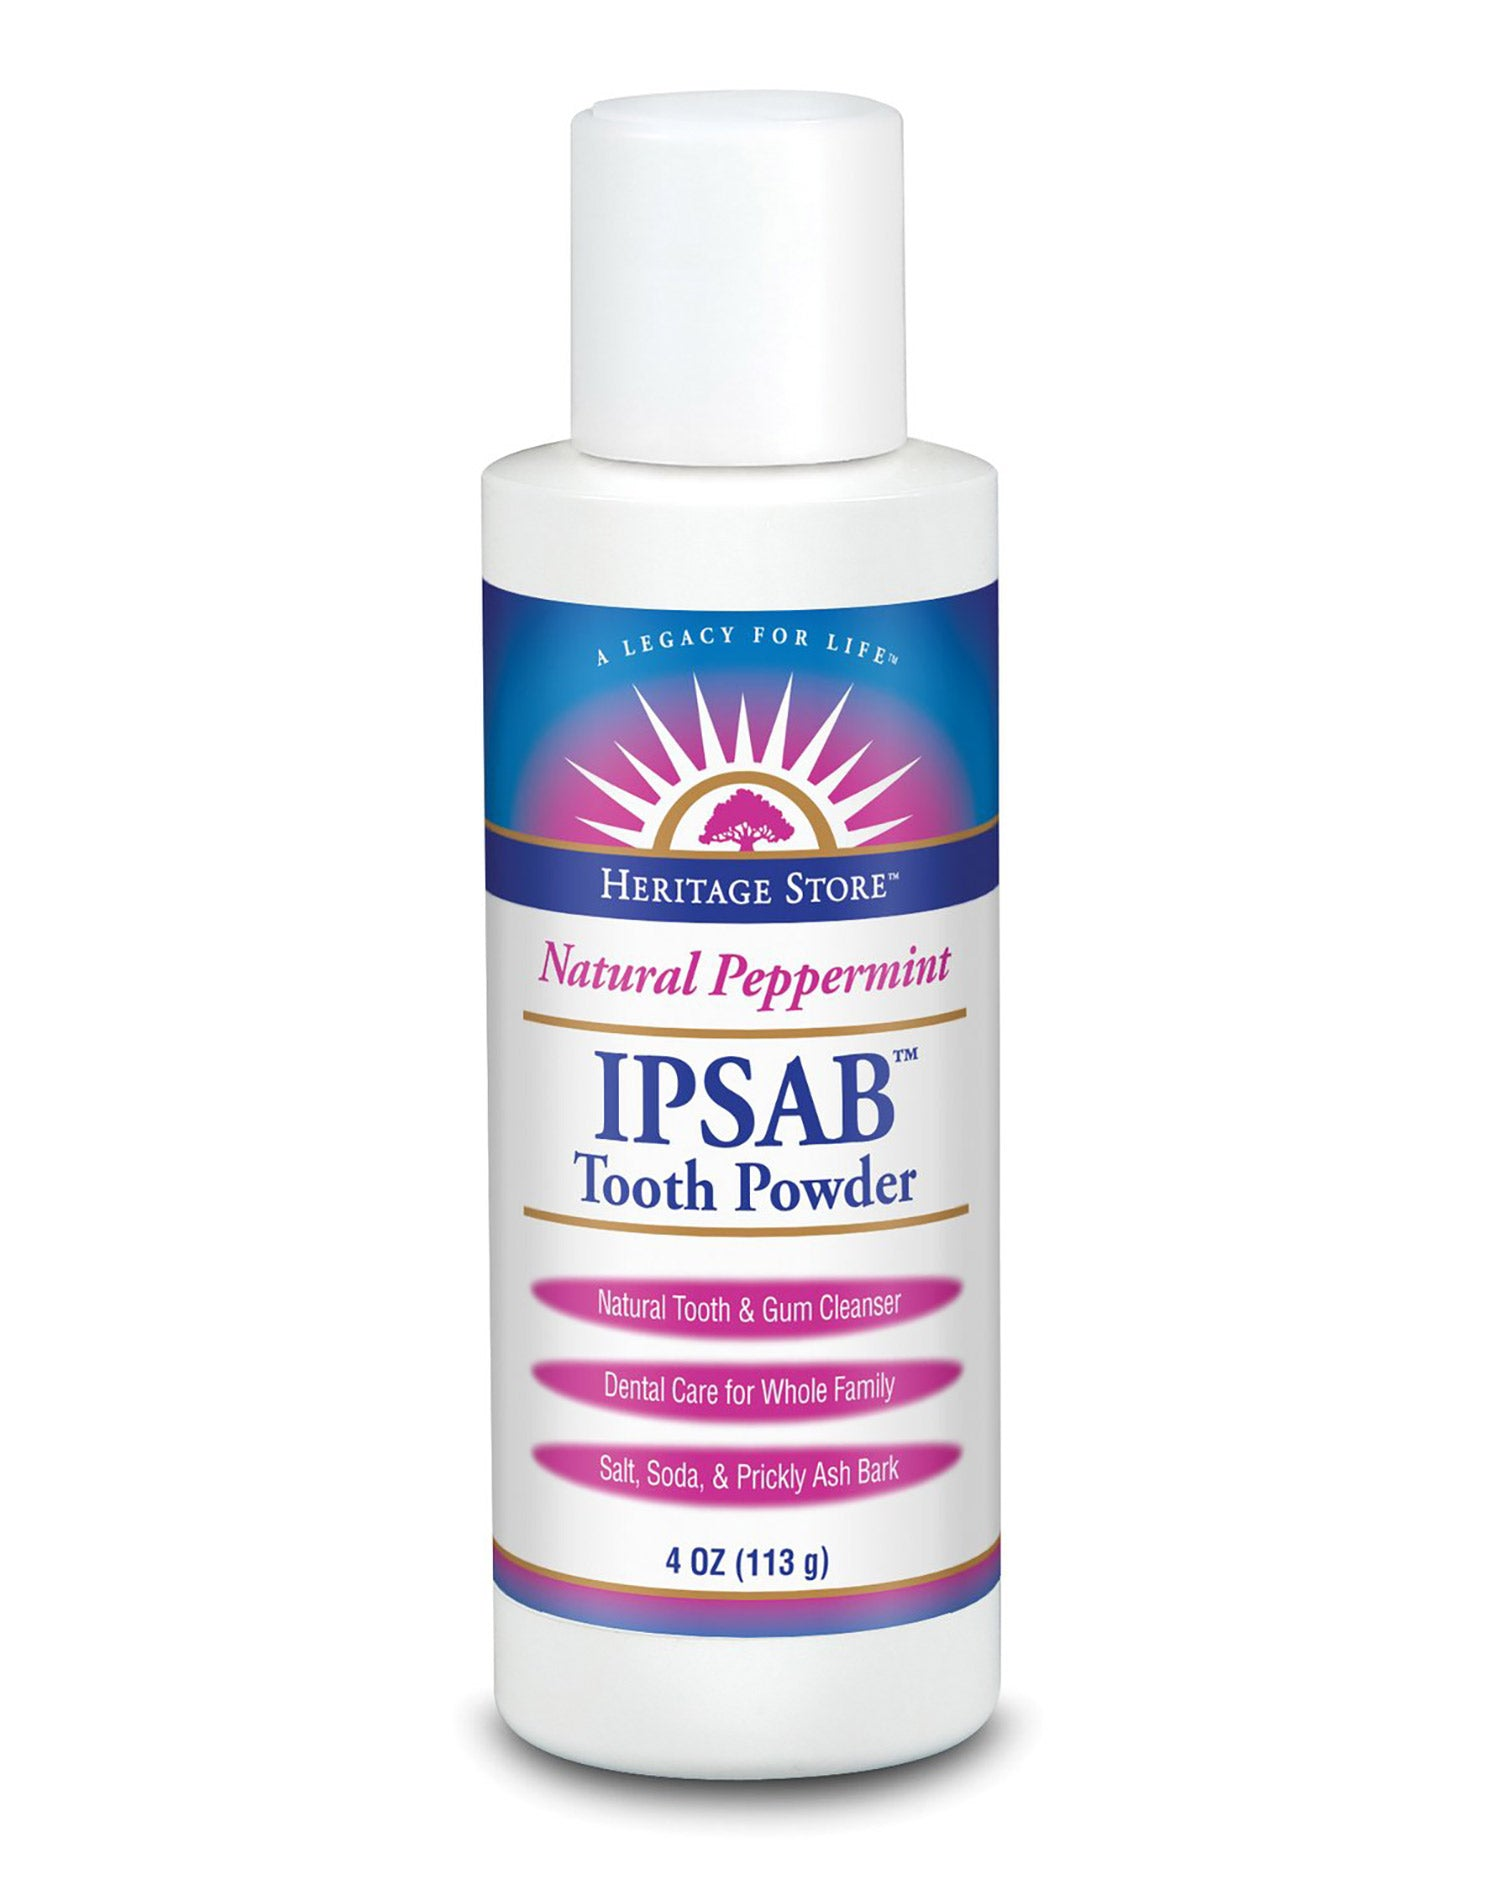 IPSAB Tooth Powder - Peppermint